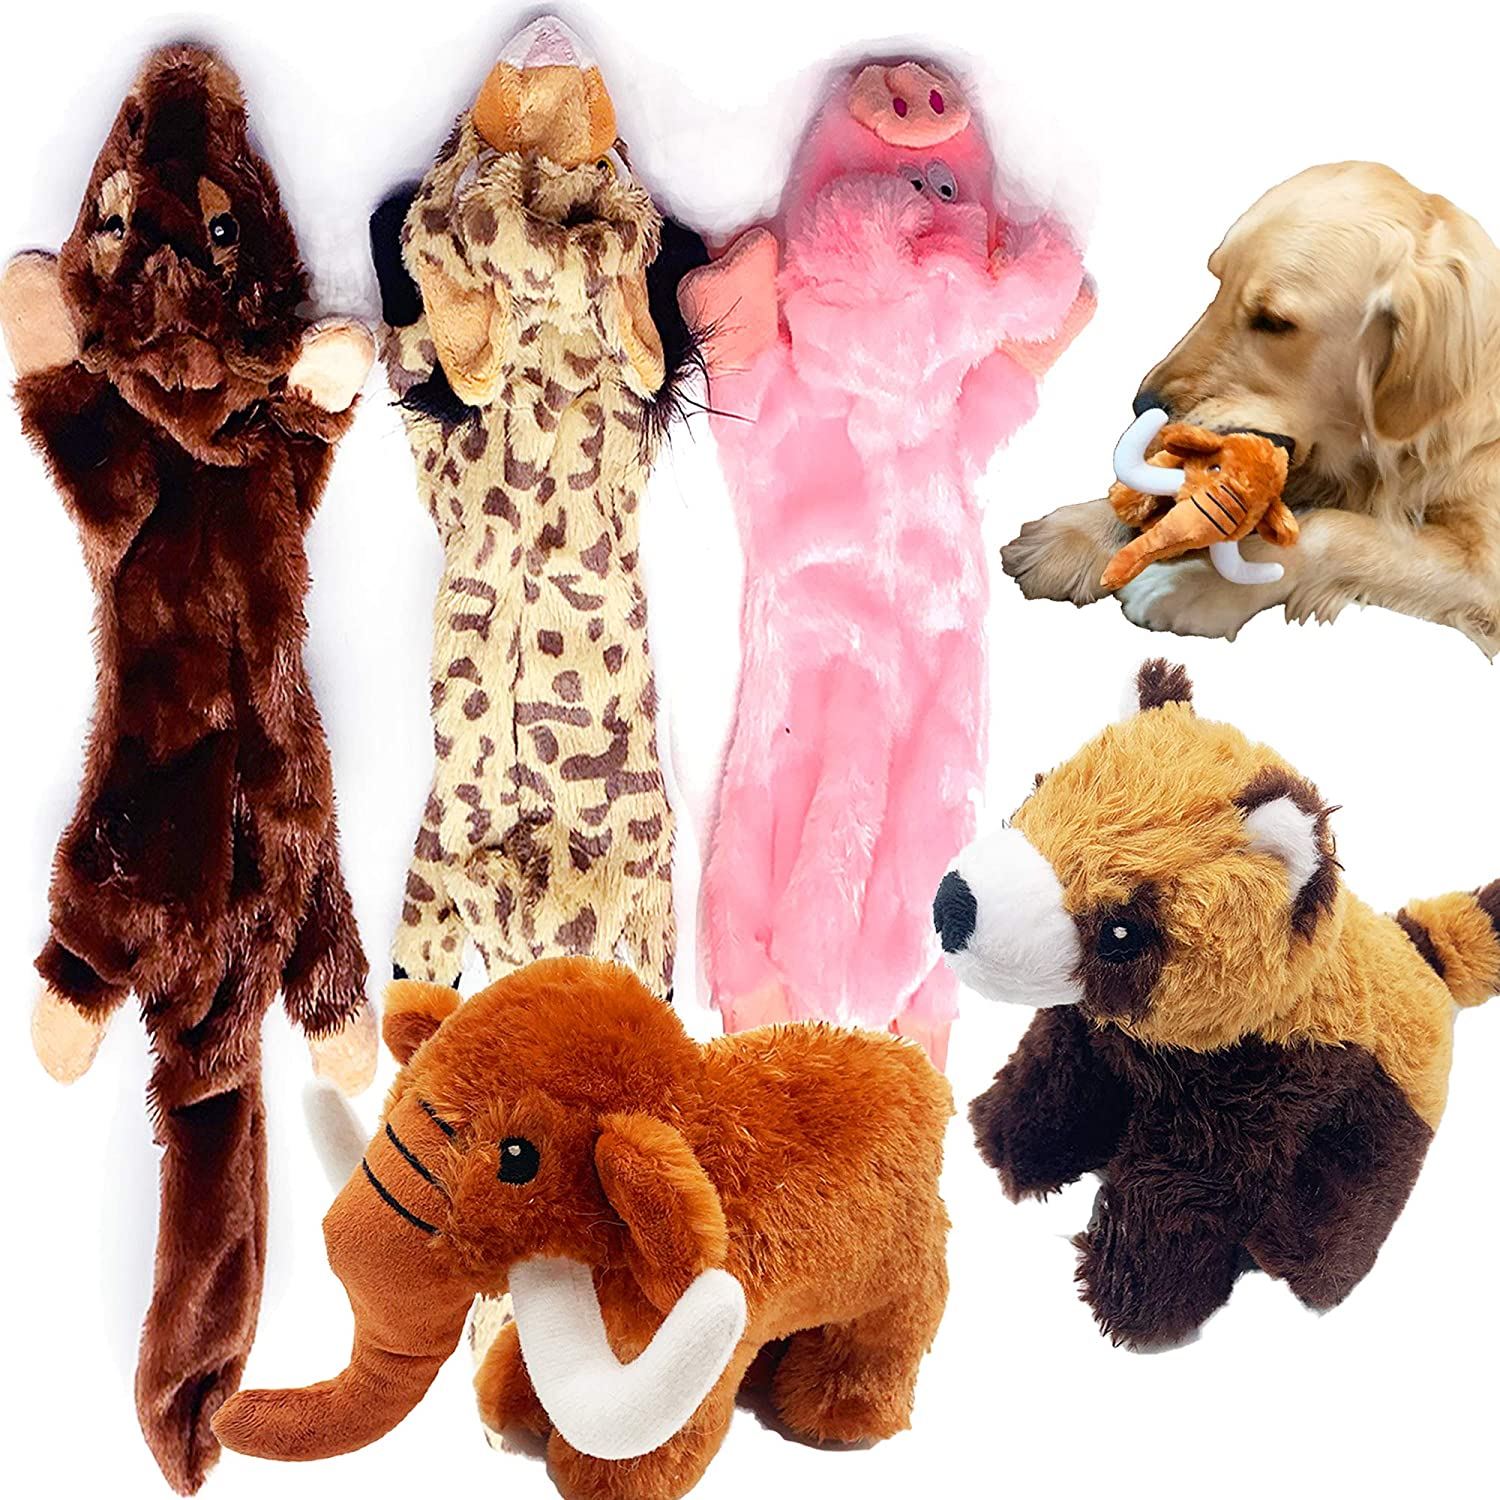 Jalousie 5 Pack Dog Squeaky Toys Three no Stuffing Toy and Two Plush with Stuffing for Small Medium Large Dog Pets New